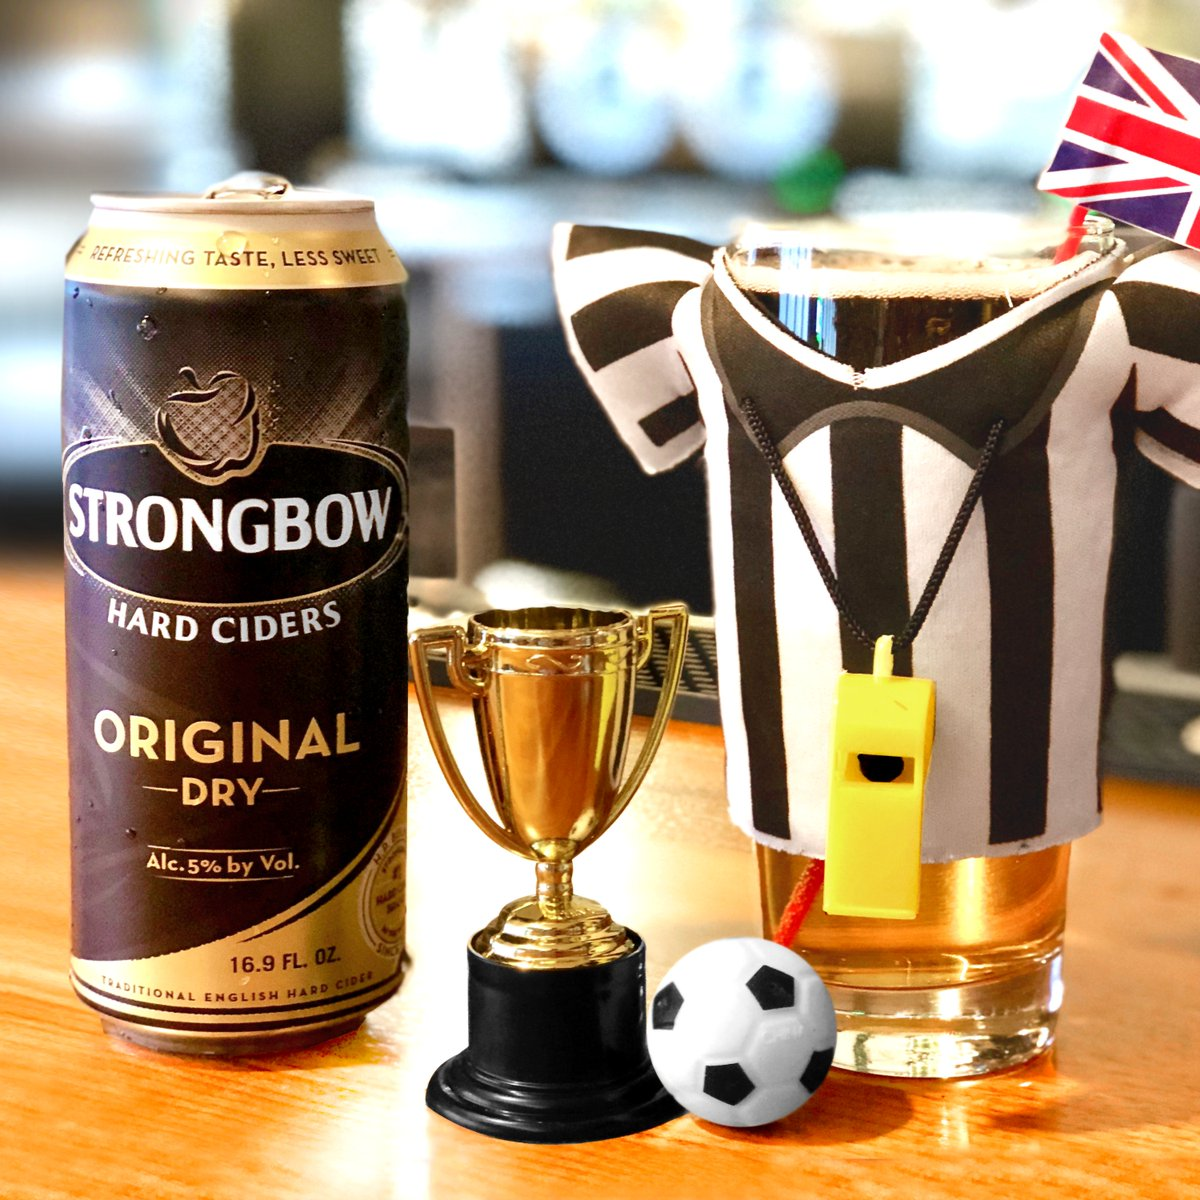 Let's go! We're waving our U.K. flag today for the lads from England 🏴󠁧󠁢󠁥󠁮󠁧󠁿. 🍻 Cheers to a great match ⚽️ #ENGBEL https://t.co/VzbjQjjGQJ